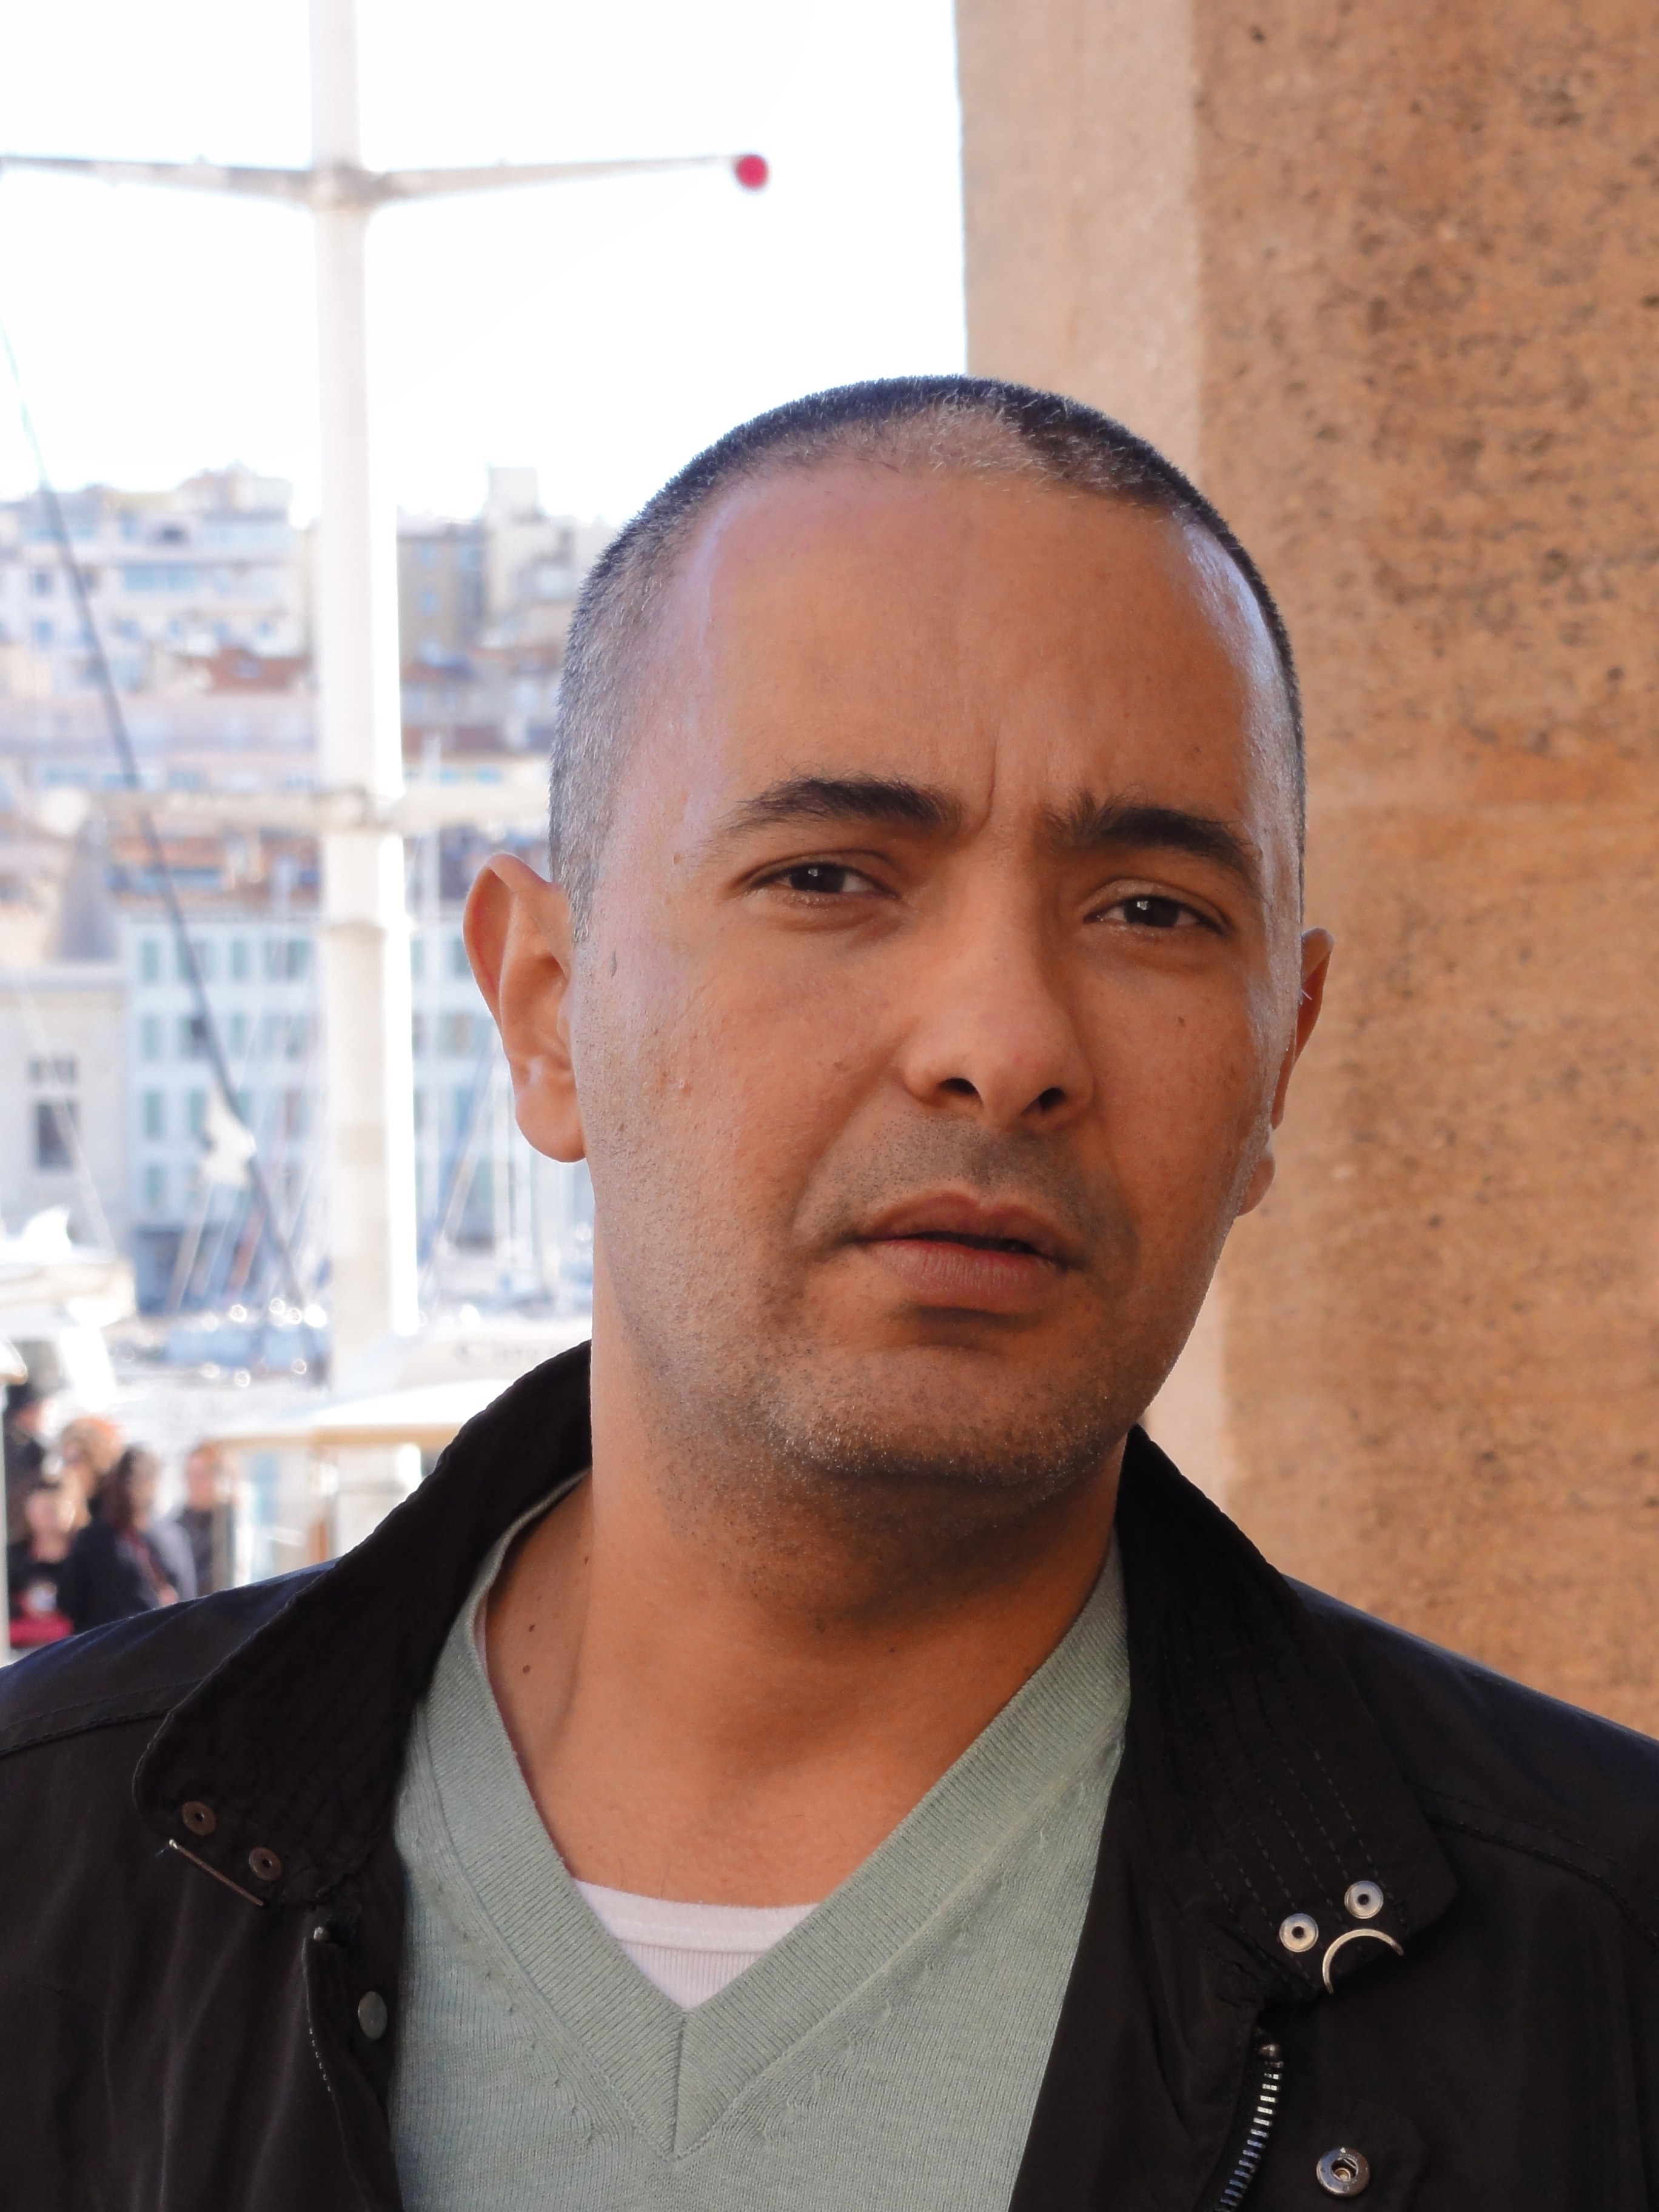 Kamel Daoud, Winner Of The Goncourt List – Romanian Student's Choice For 2014, In Romania